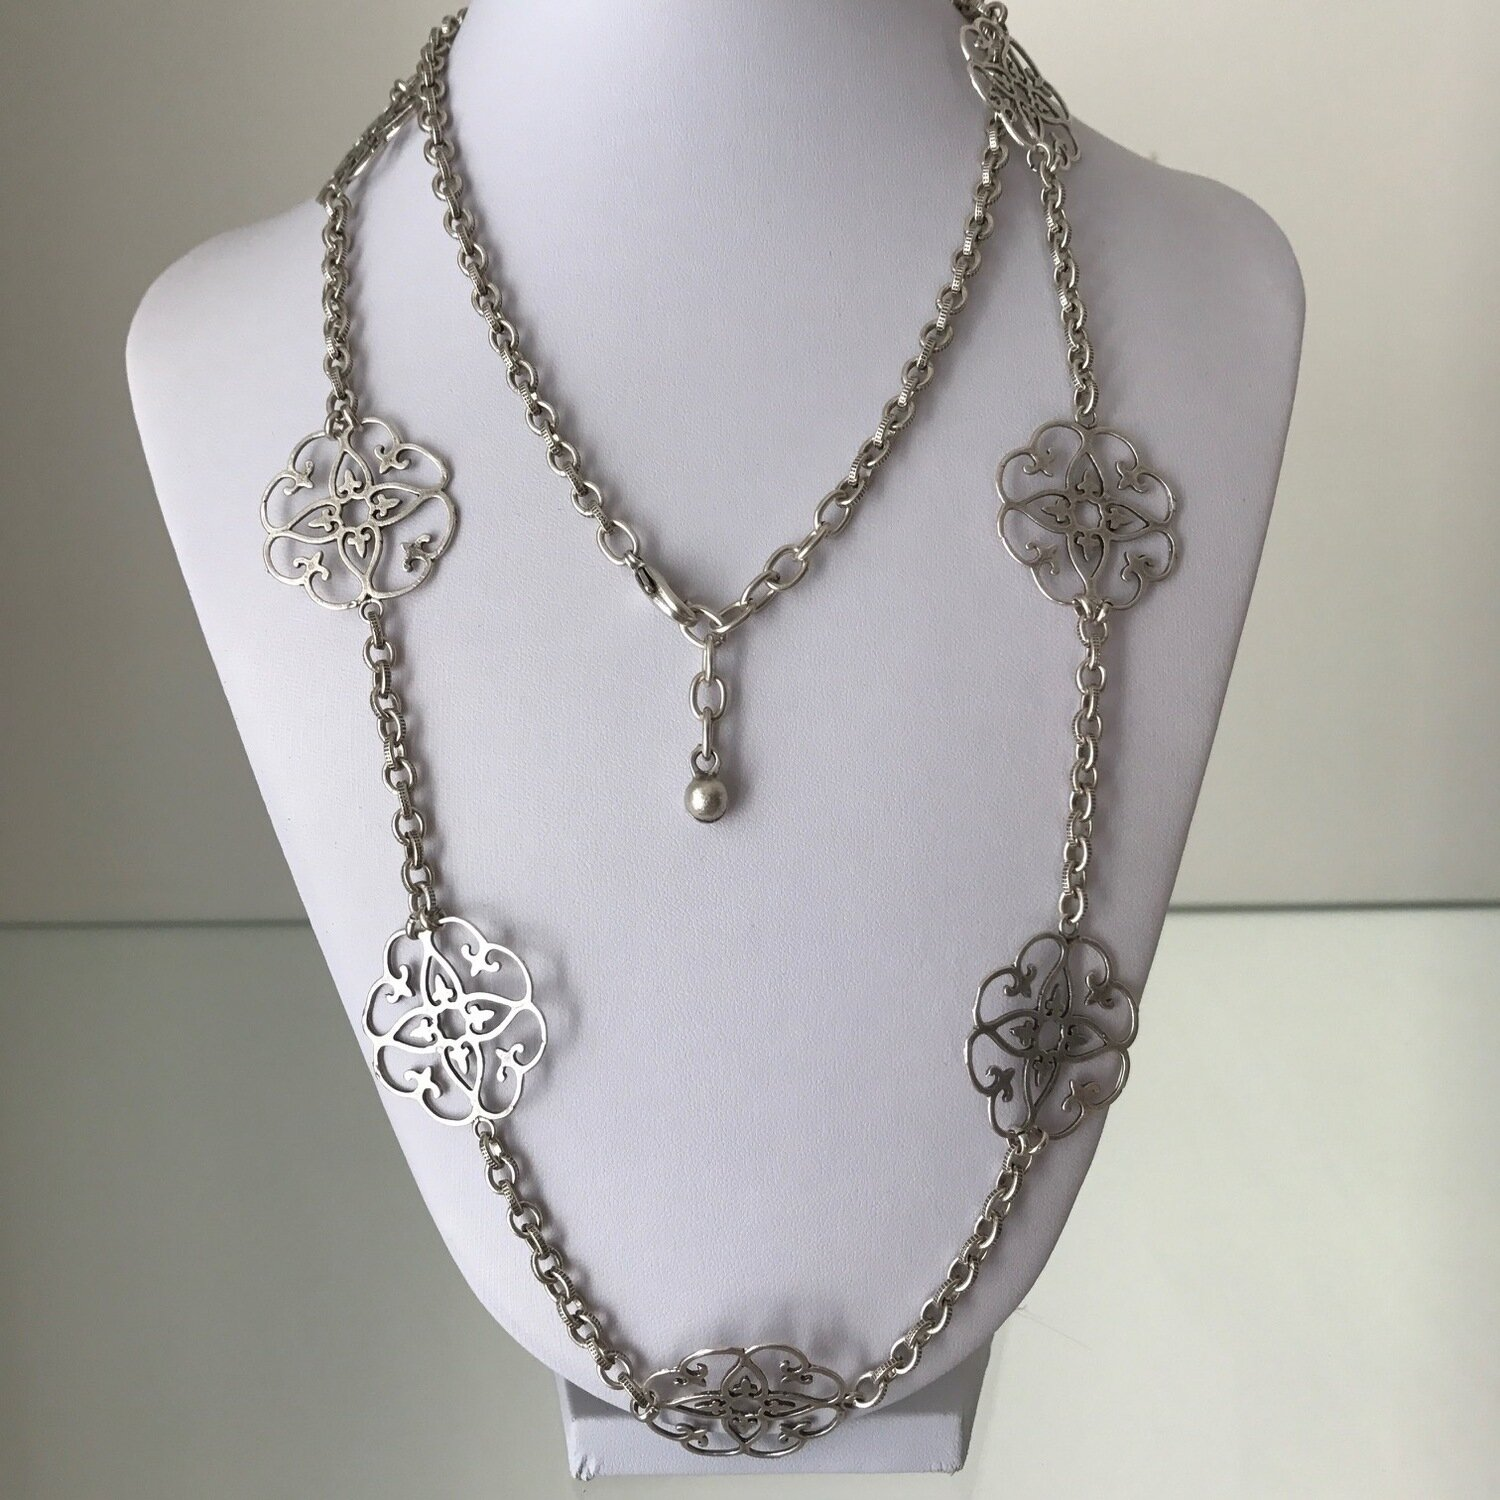 BNF01 - Silver Plated Necklace